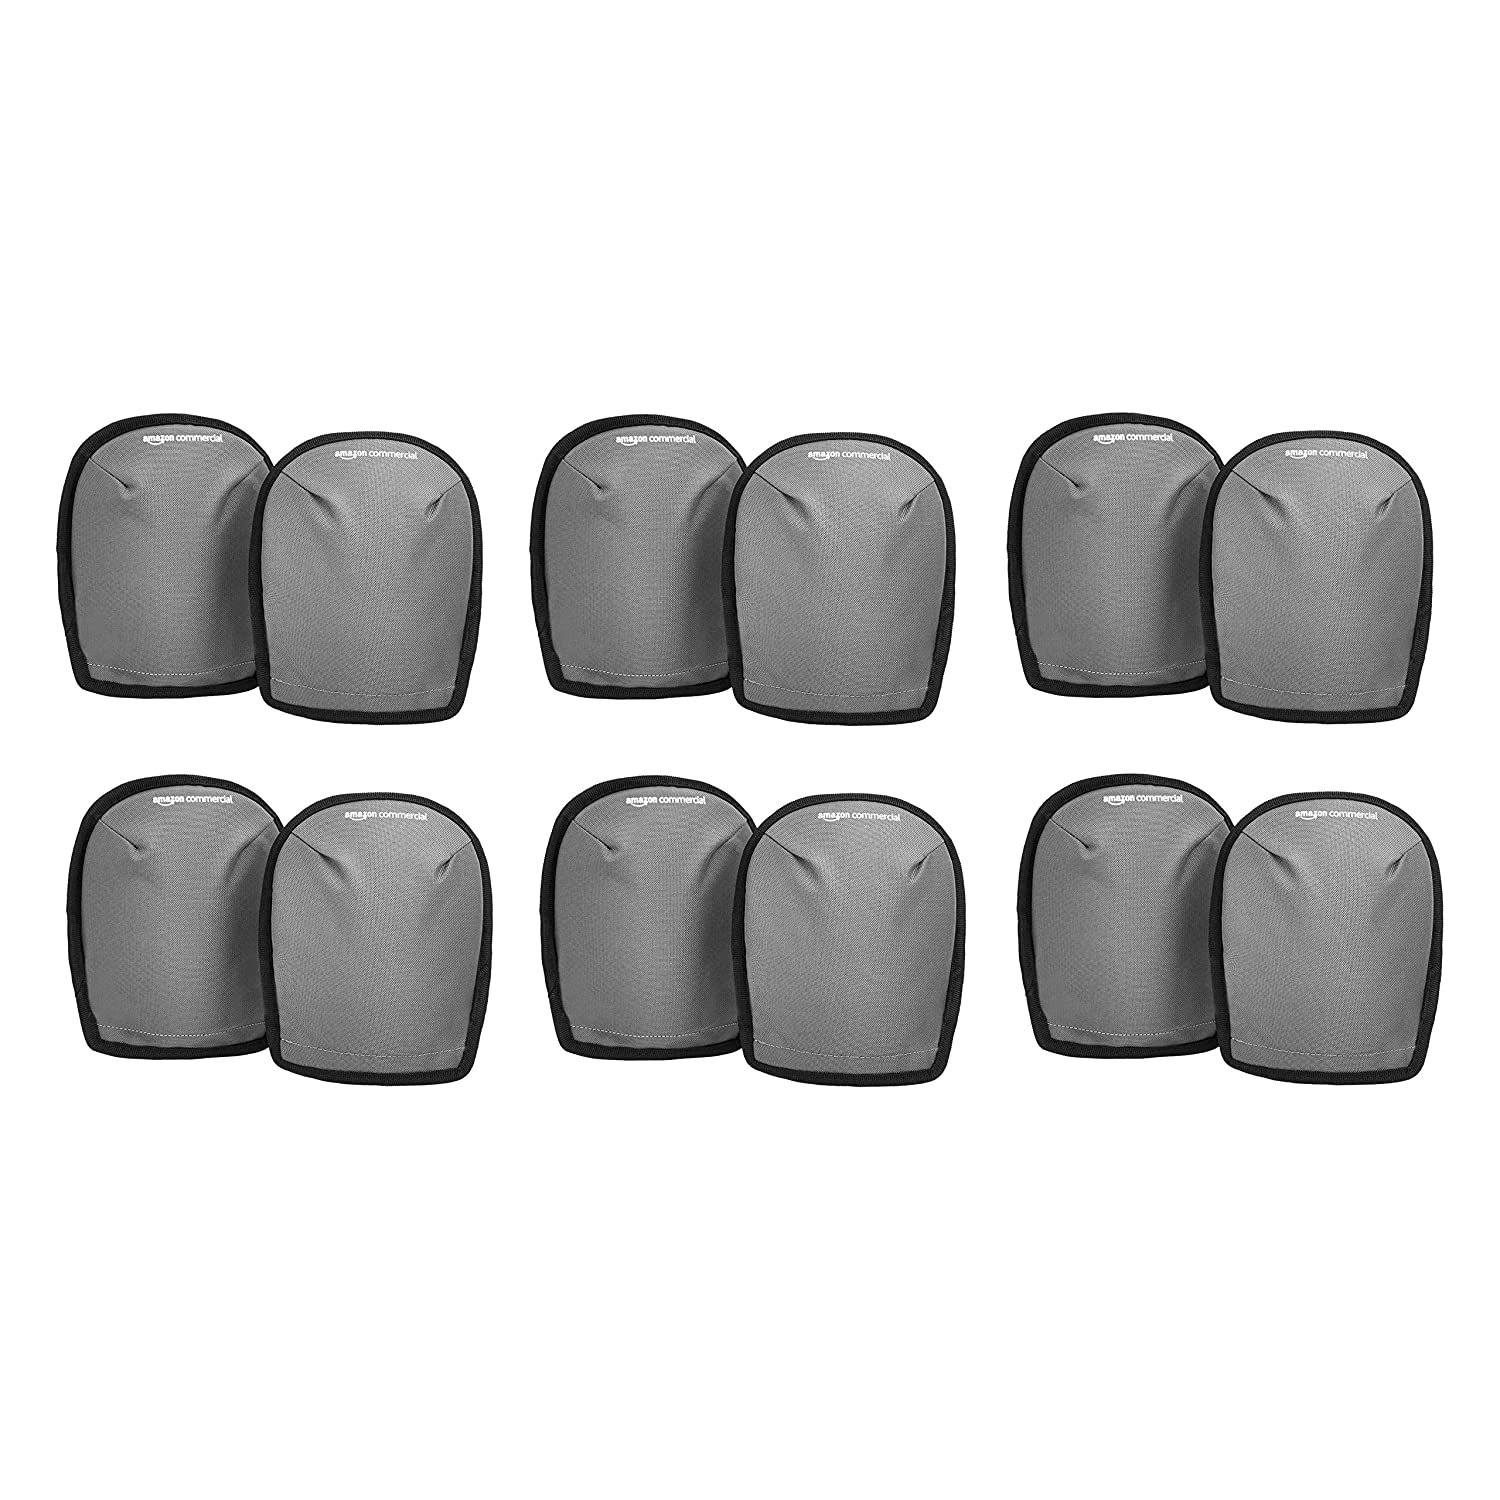 """6-Pairs AmazonCommercial 8"""" Washable Knee Pads $10.60 + Free S&H w/ Prime or orders $25+ ~ Amazon"""